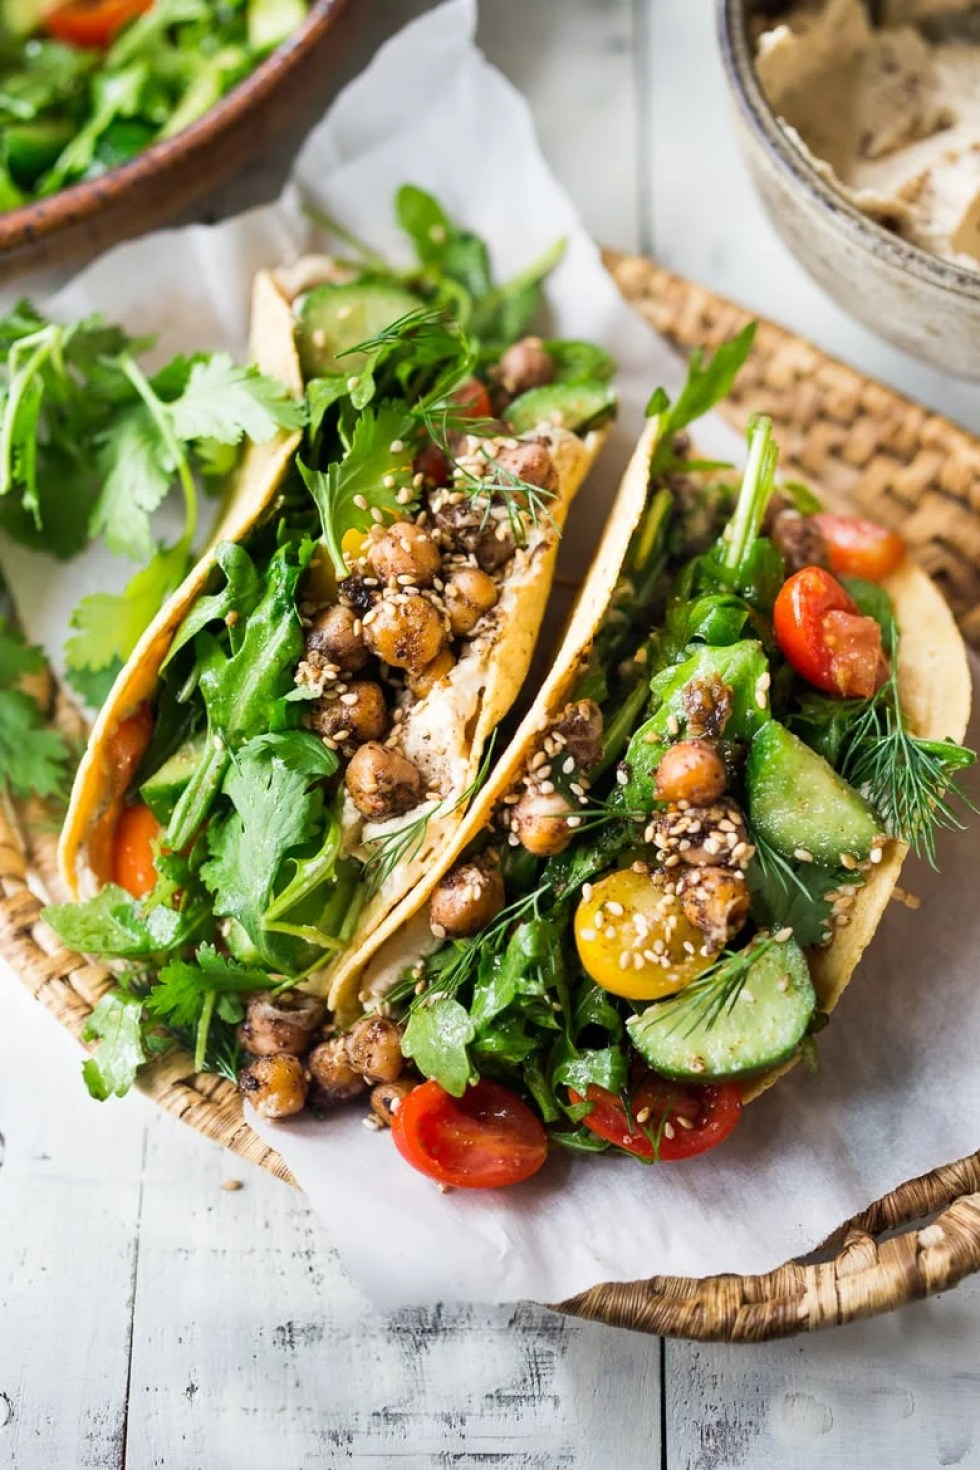 Middle Eastern Salad Tacos with spiced chickpeas, hummus and a mound of lemony salad, topped with fresh herbs and scallions. Vegan & sooooo Delicious! | www.feastingathome.com